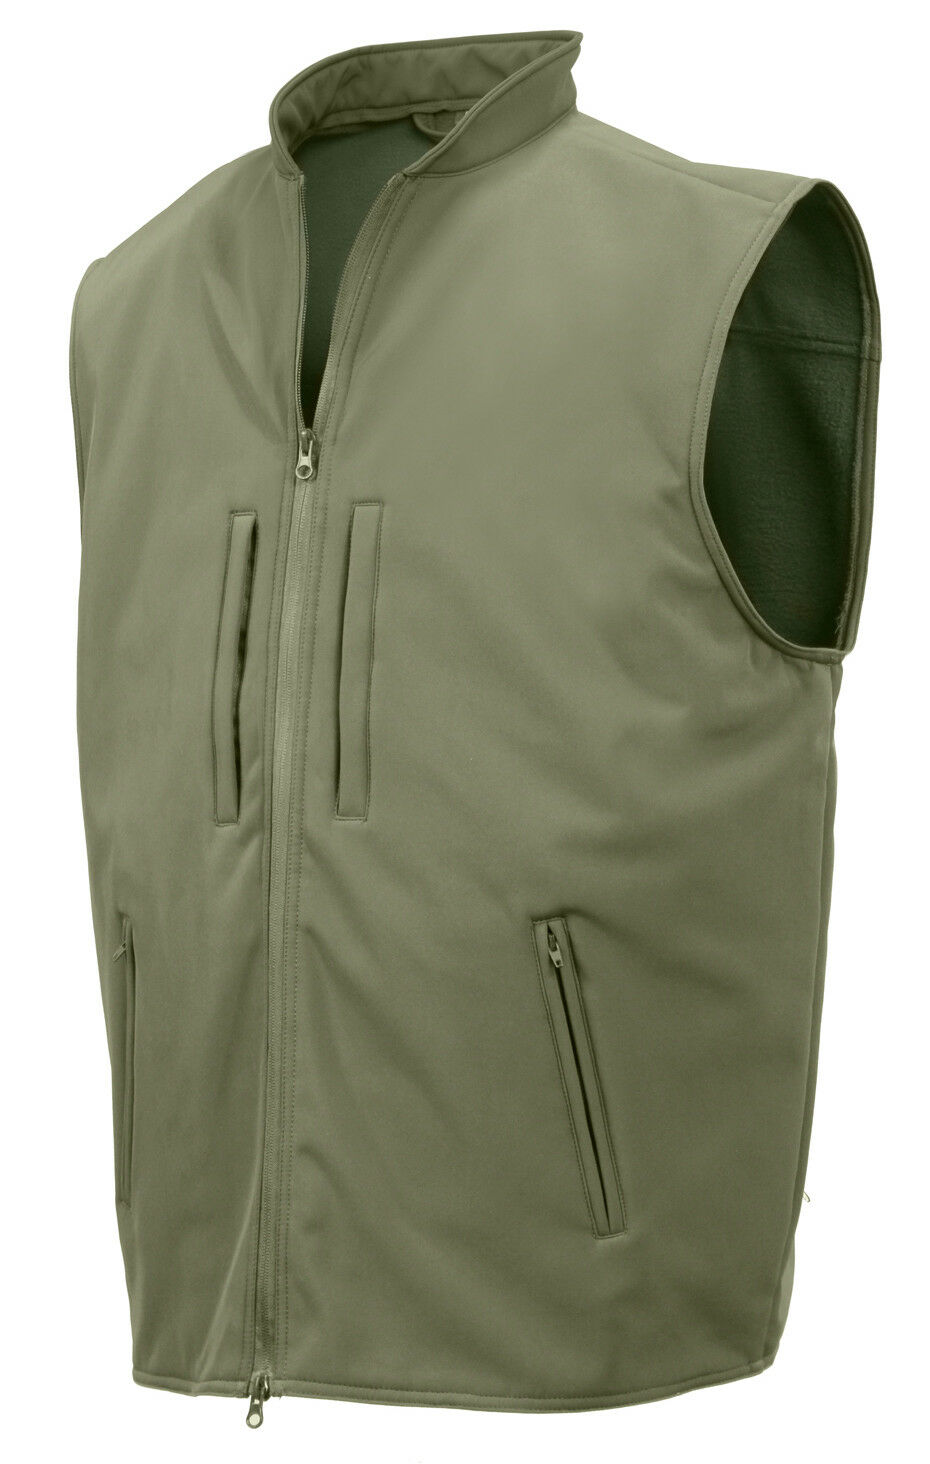 CCW Tactical Vest Soft Shell Concealed Carry Olive Drab redhco 86800